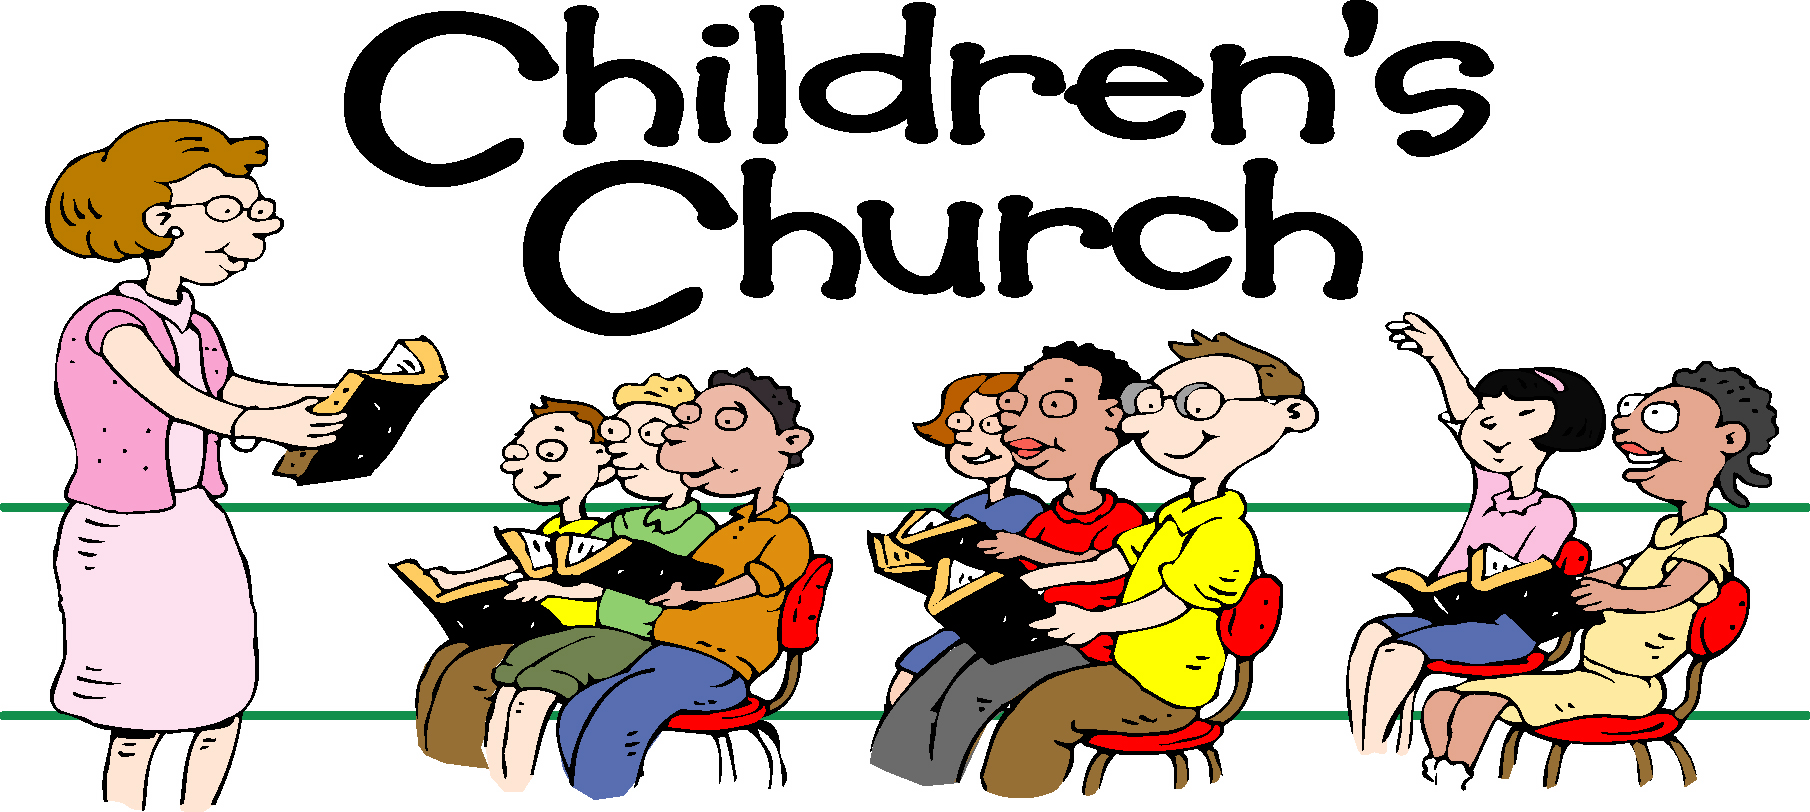 Free Church Activities Cliparts, Download Free Clip Art, Free Clip.